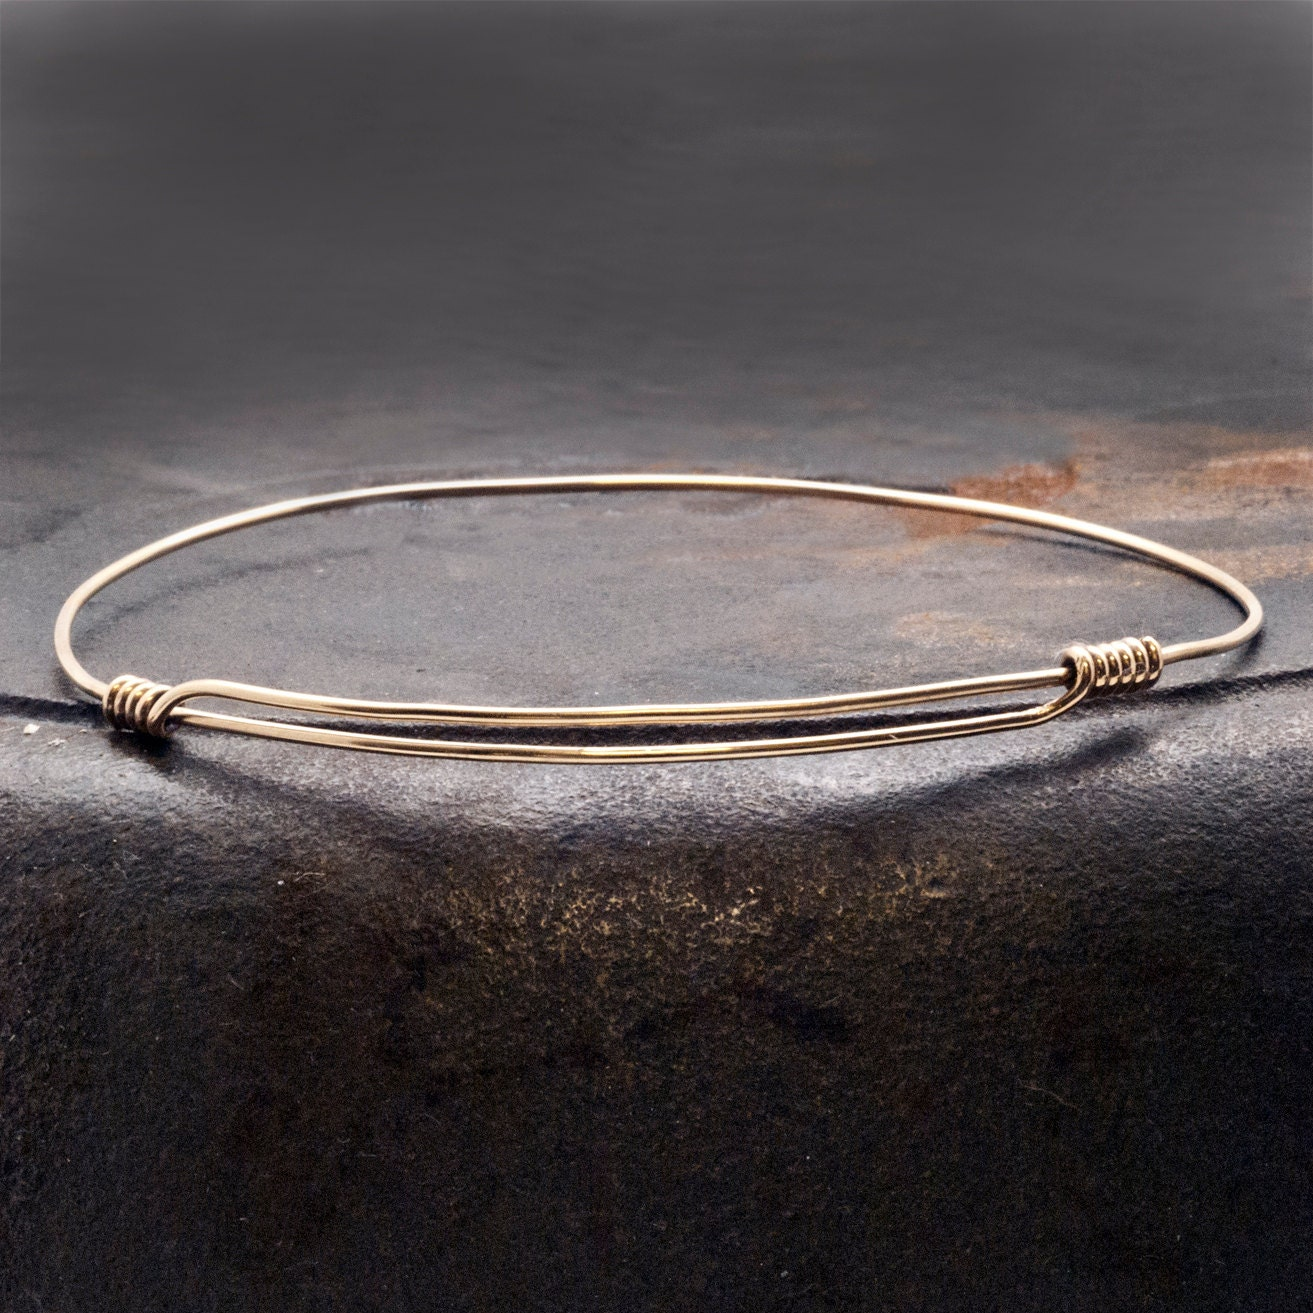 Gold Expandable Bracelet, Man/Woman 14k Gold Filled Adjustable Thin ...